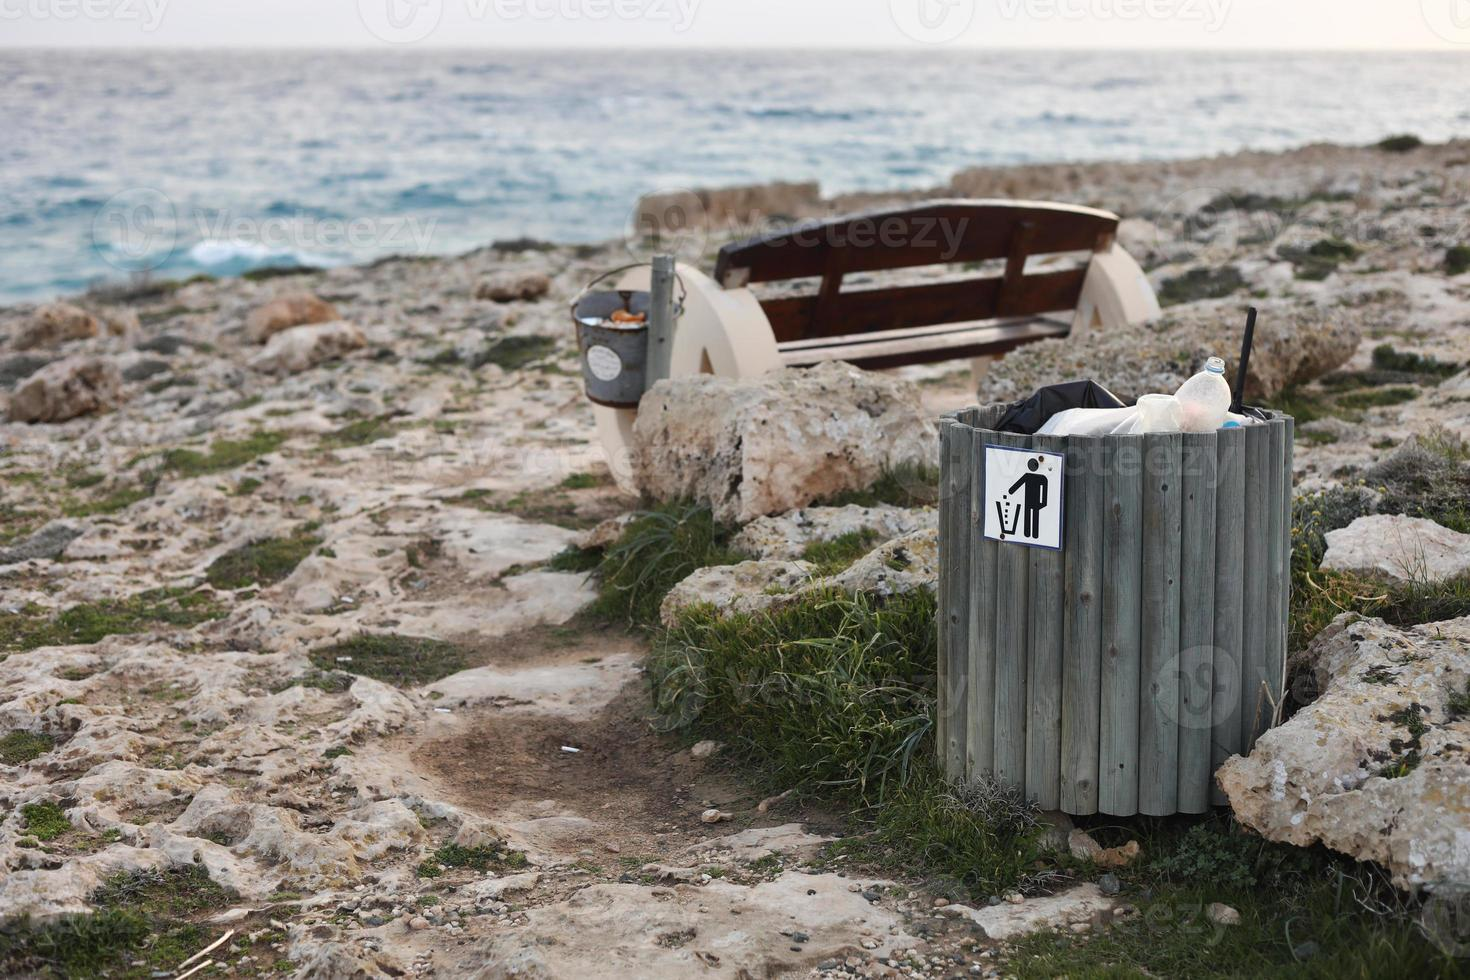 Full trash or litter bin with plastic bottle, beer cans, and organic waste visibly showing pollution in coastal areas near the sea. Wooden bench with bucket with garbage on rocky seashore. photo